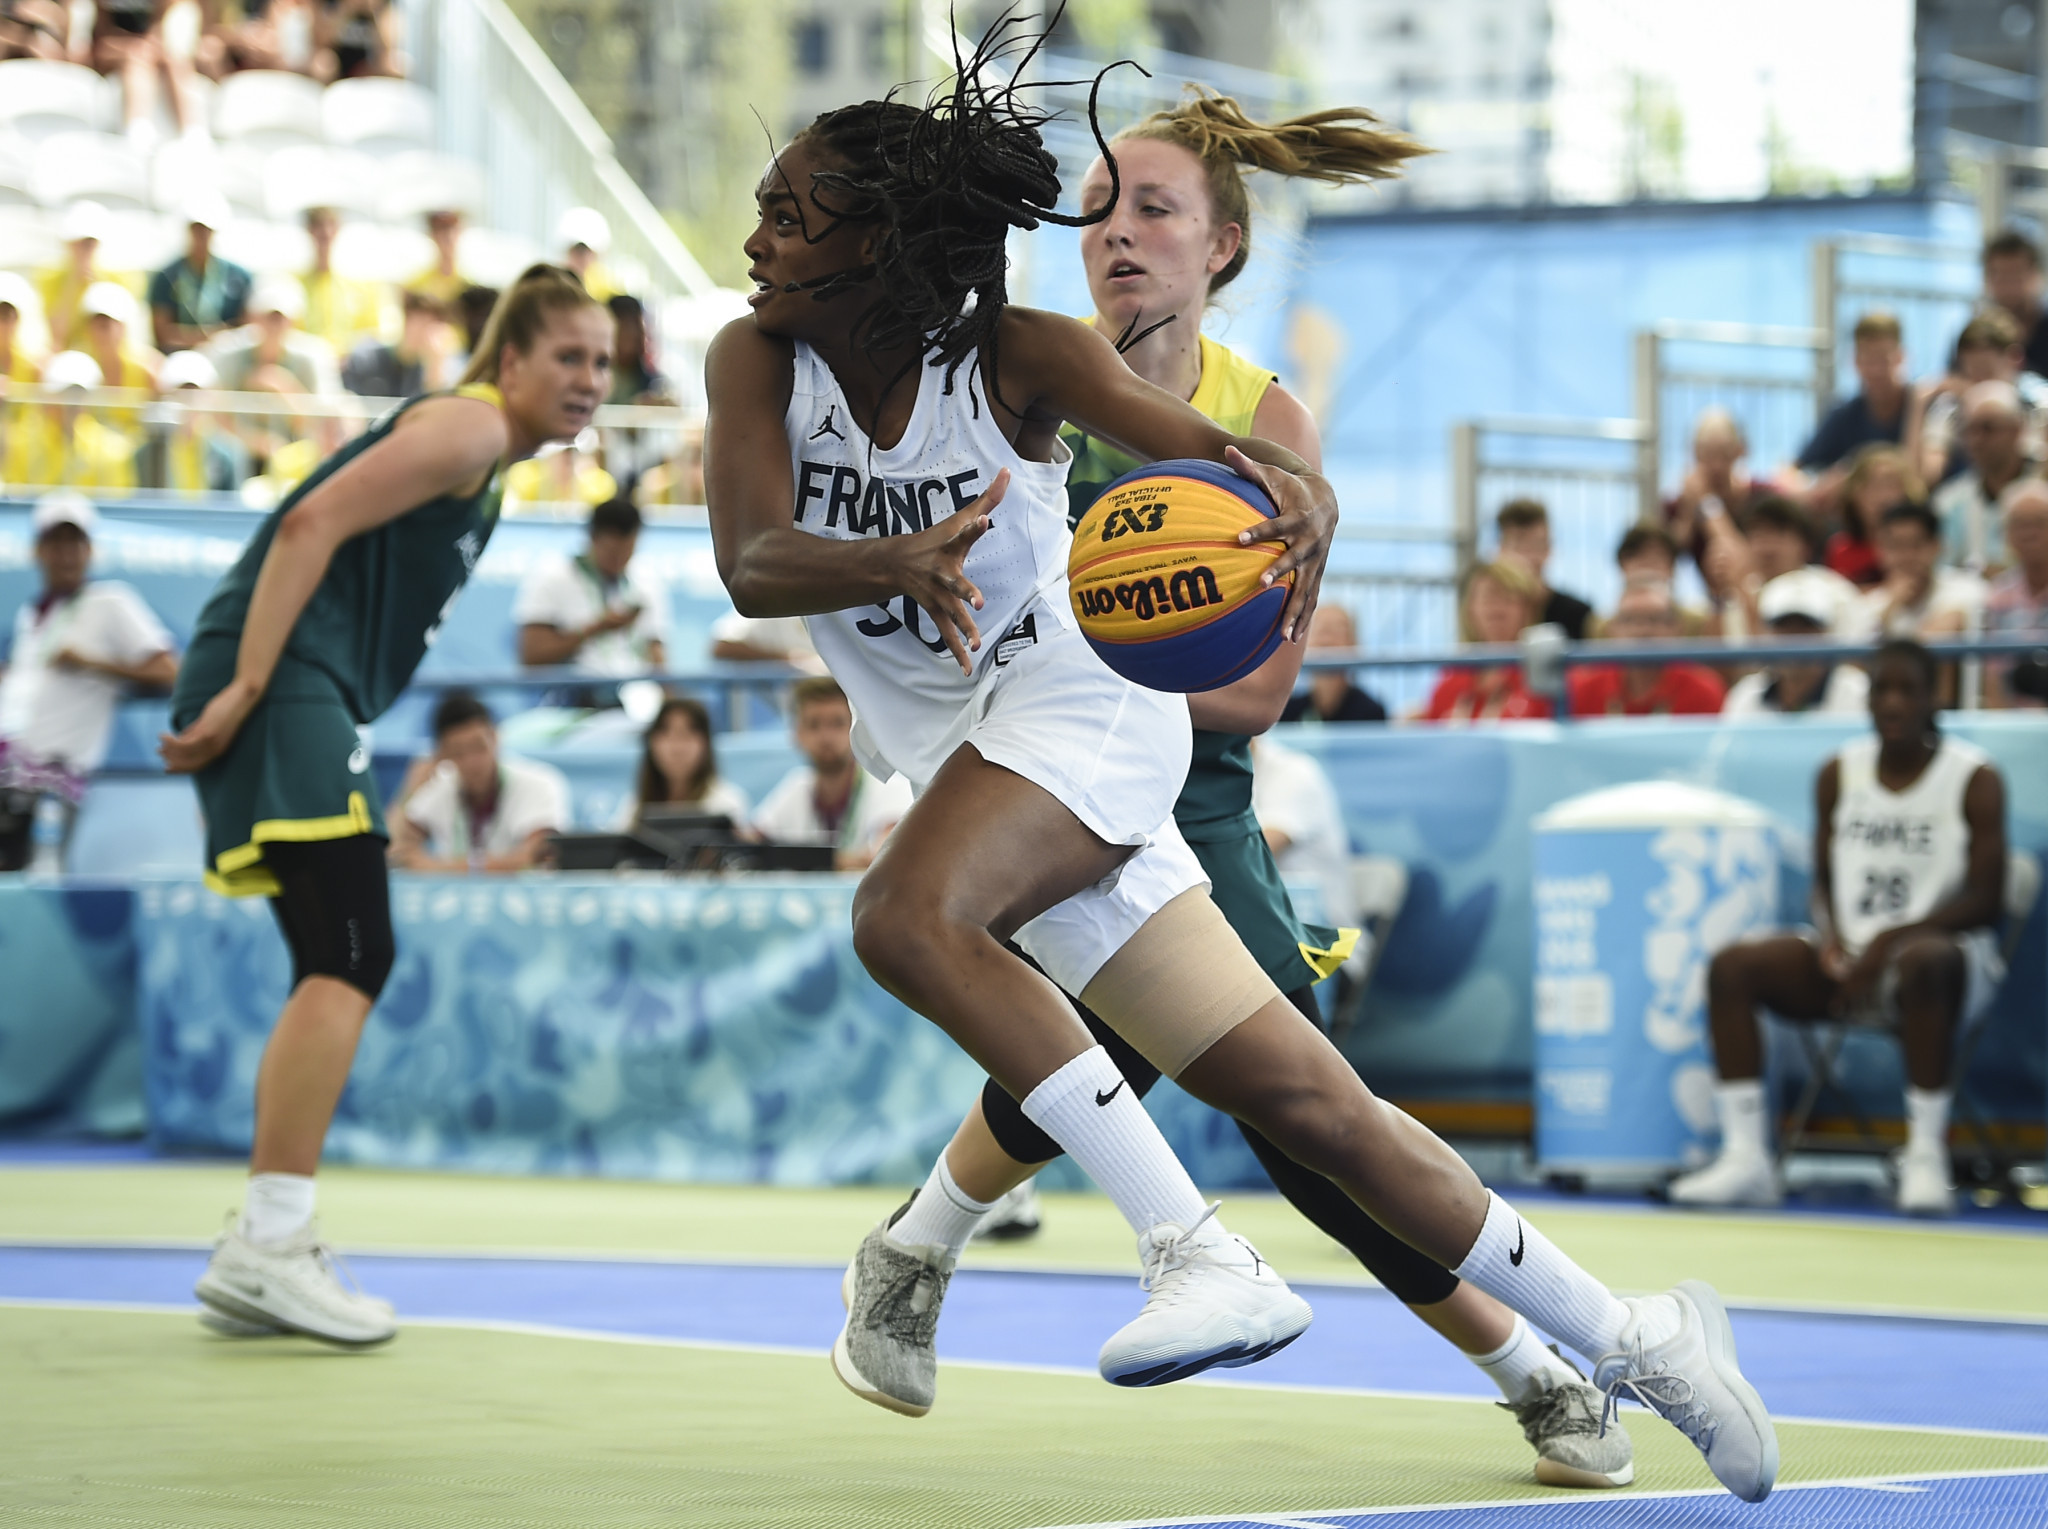 FIBA to judge success of 3x3 basketball tournament at Tokyo 2020 on ability to create new stars